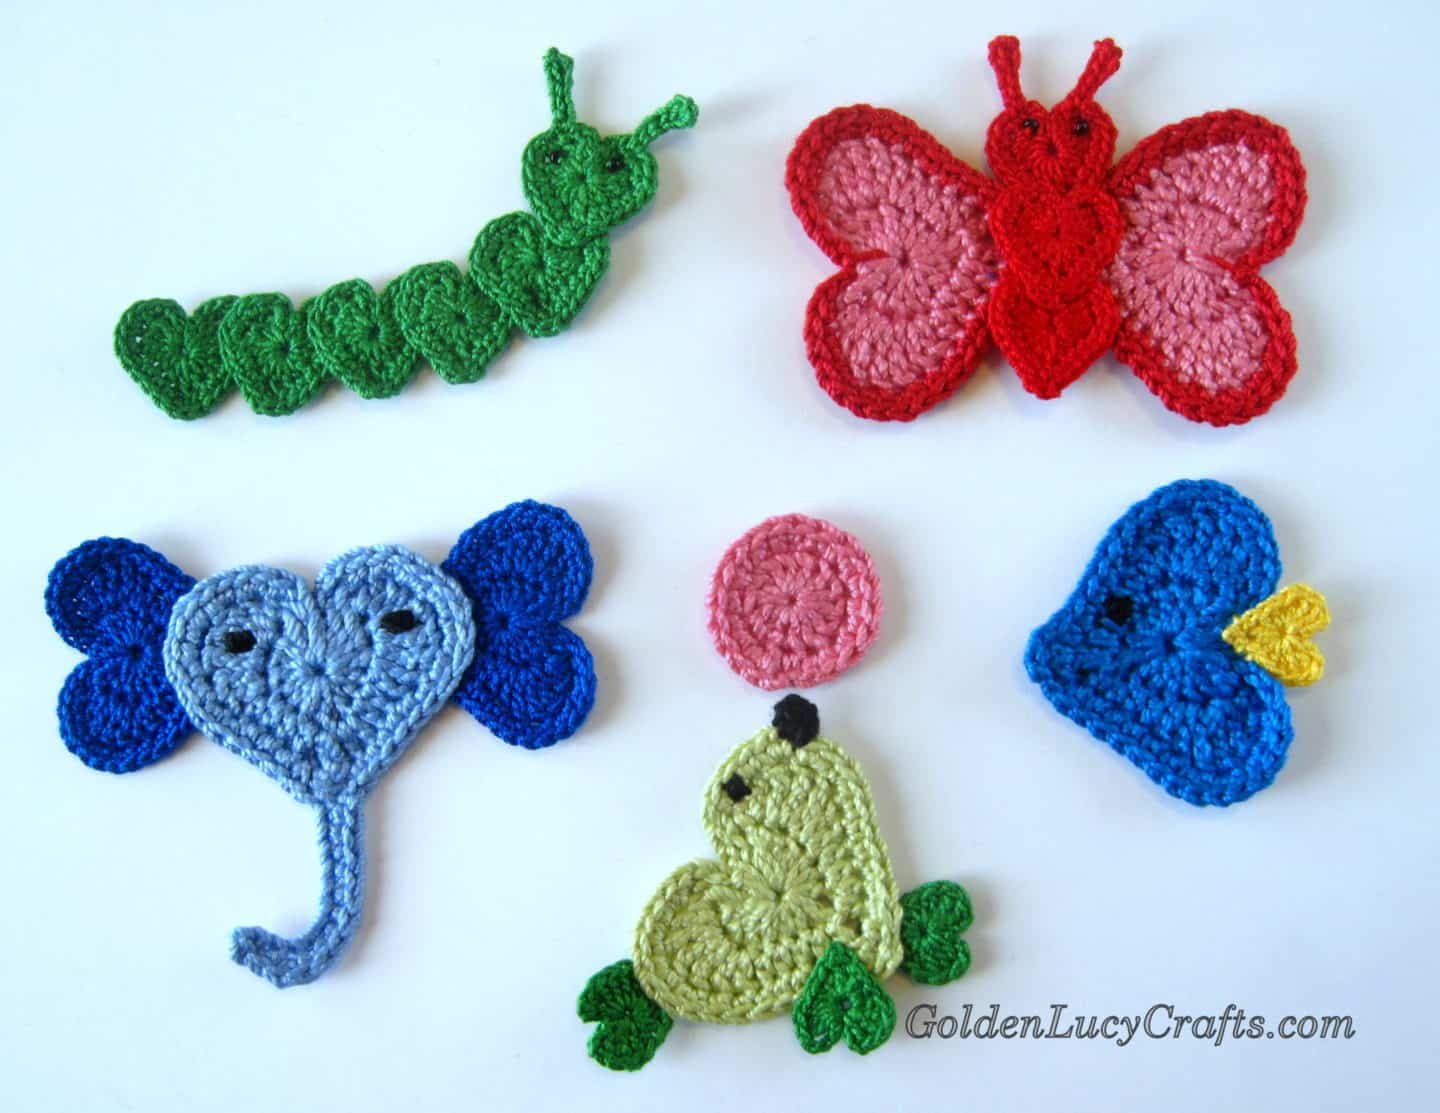 Free Crochet Patterns - Heart Shaped Animals - GoldenLucyCrafts